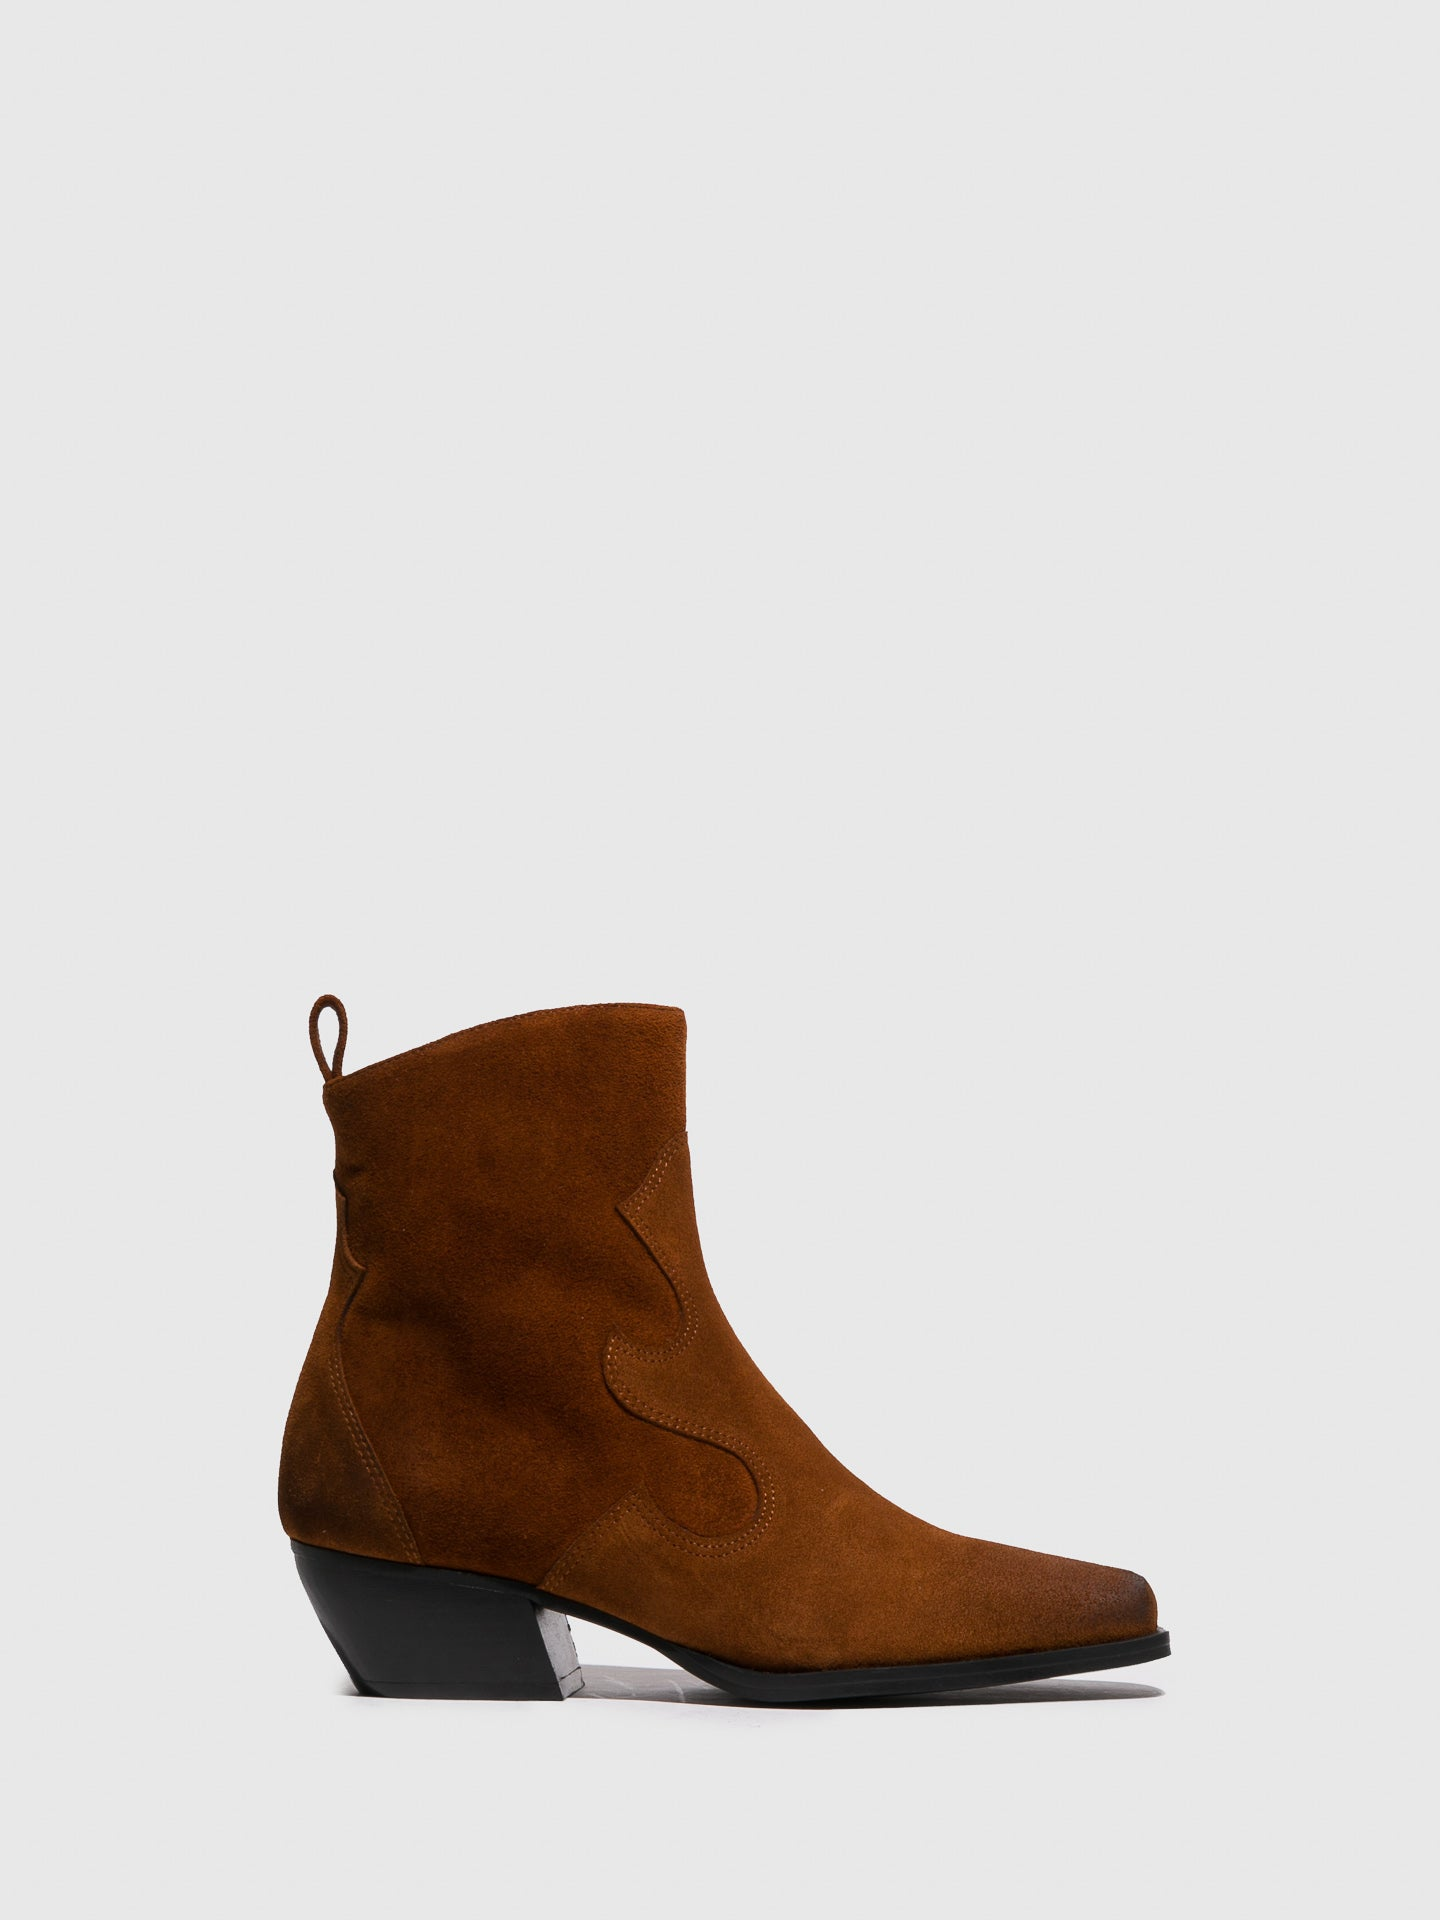 Sofia Costa Camel Zip Up Ankle Boots